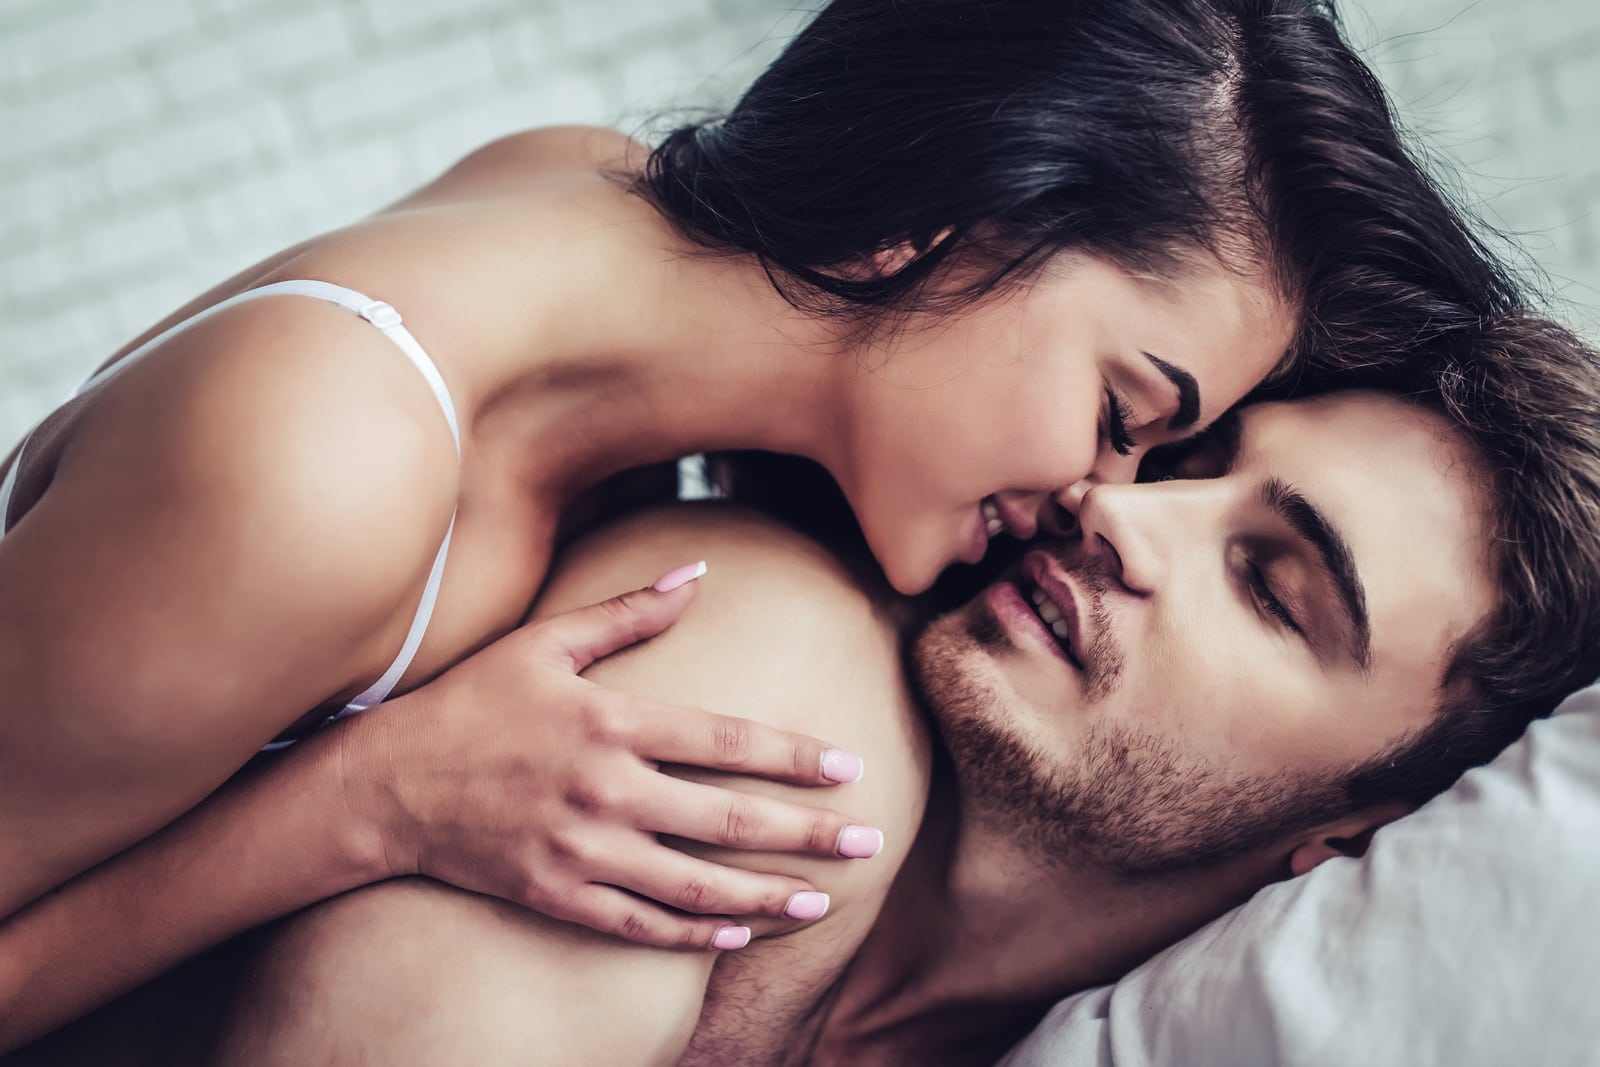 the brunette in bed lies on the man and passionately kisses him